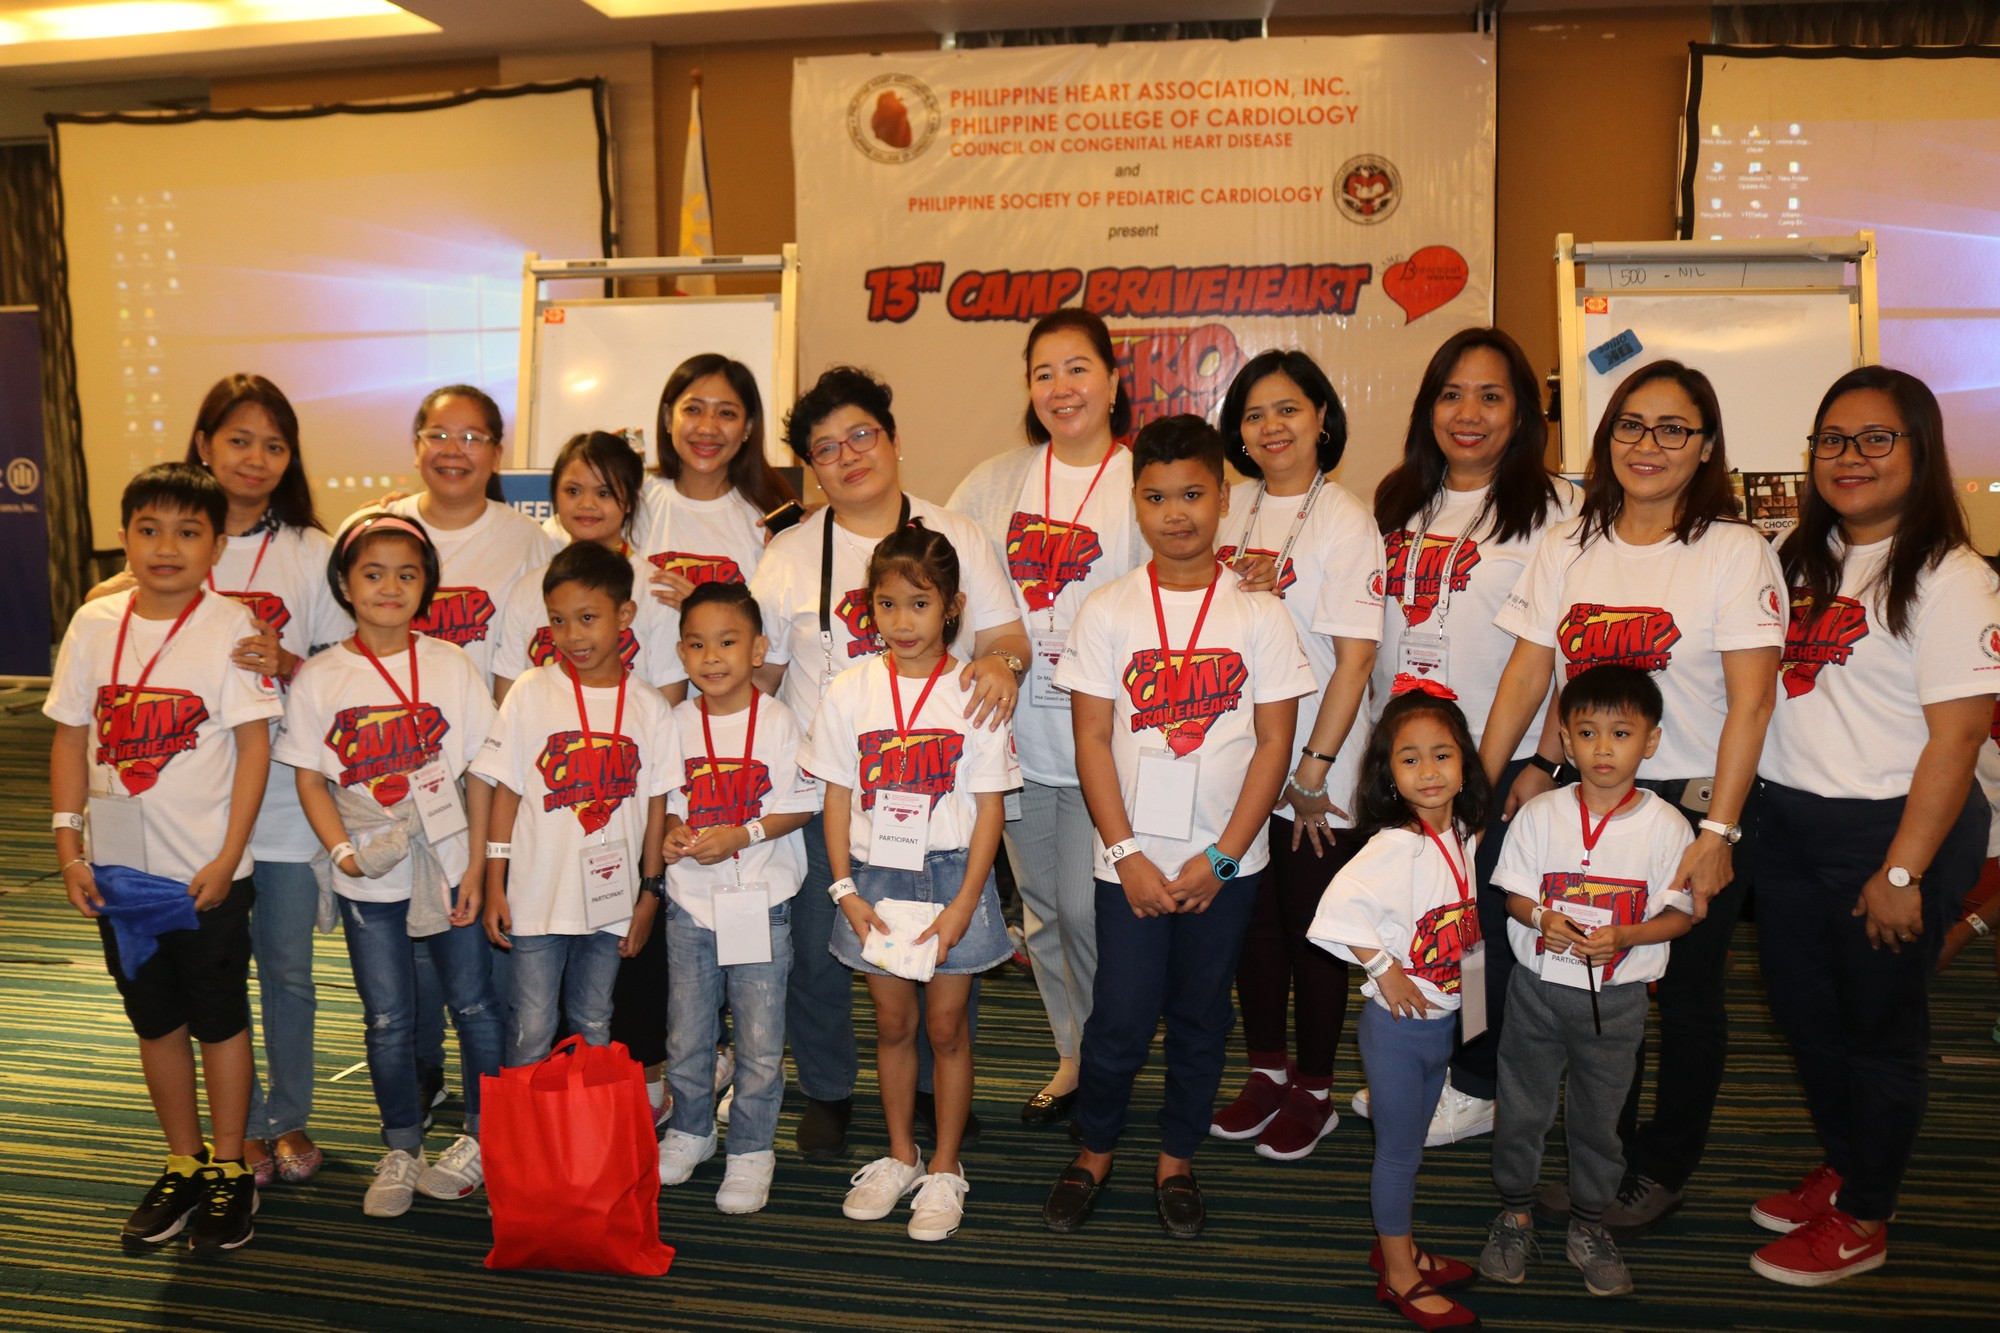 Post-surgical kids with heart diseases who participated in recent Camp Braveheart program of Allianz Philippines, PHA, and PSPC.